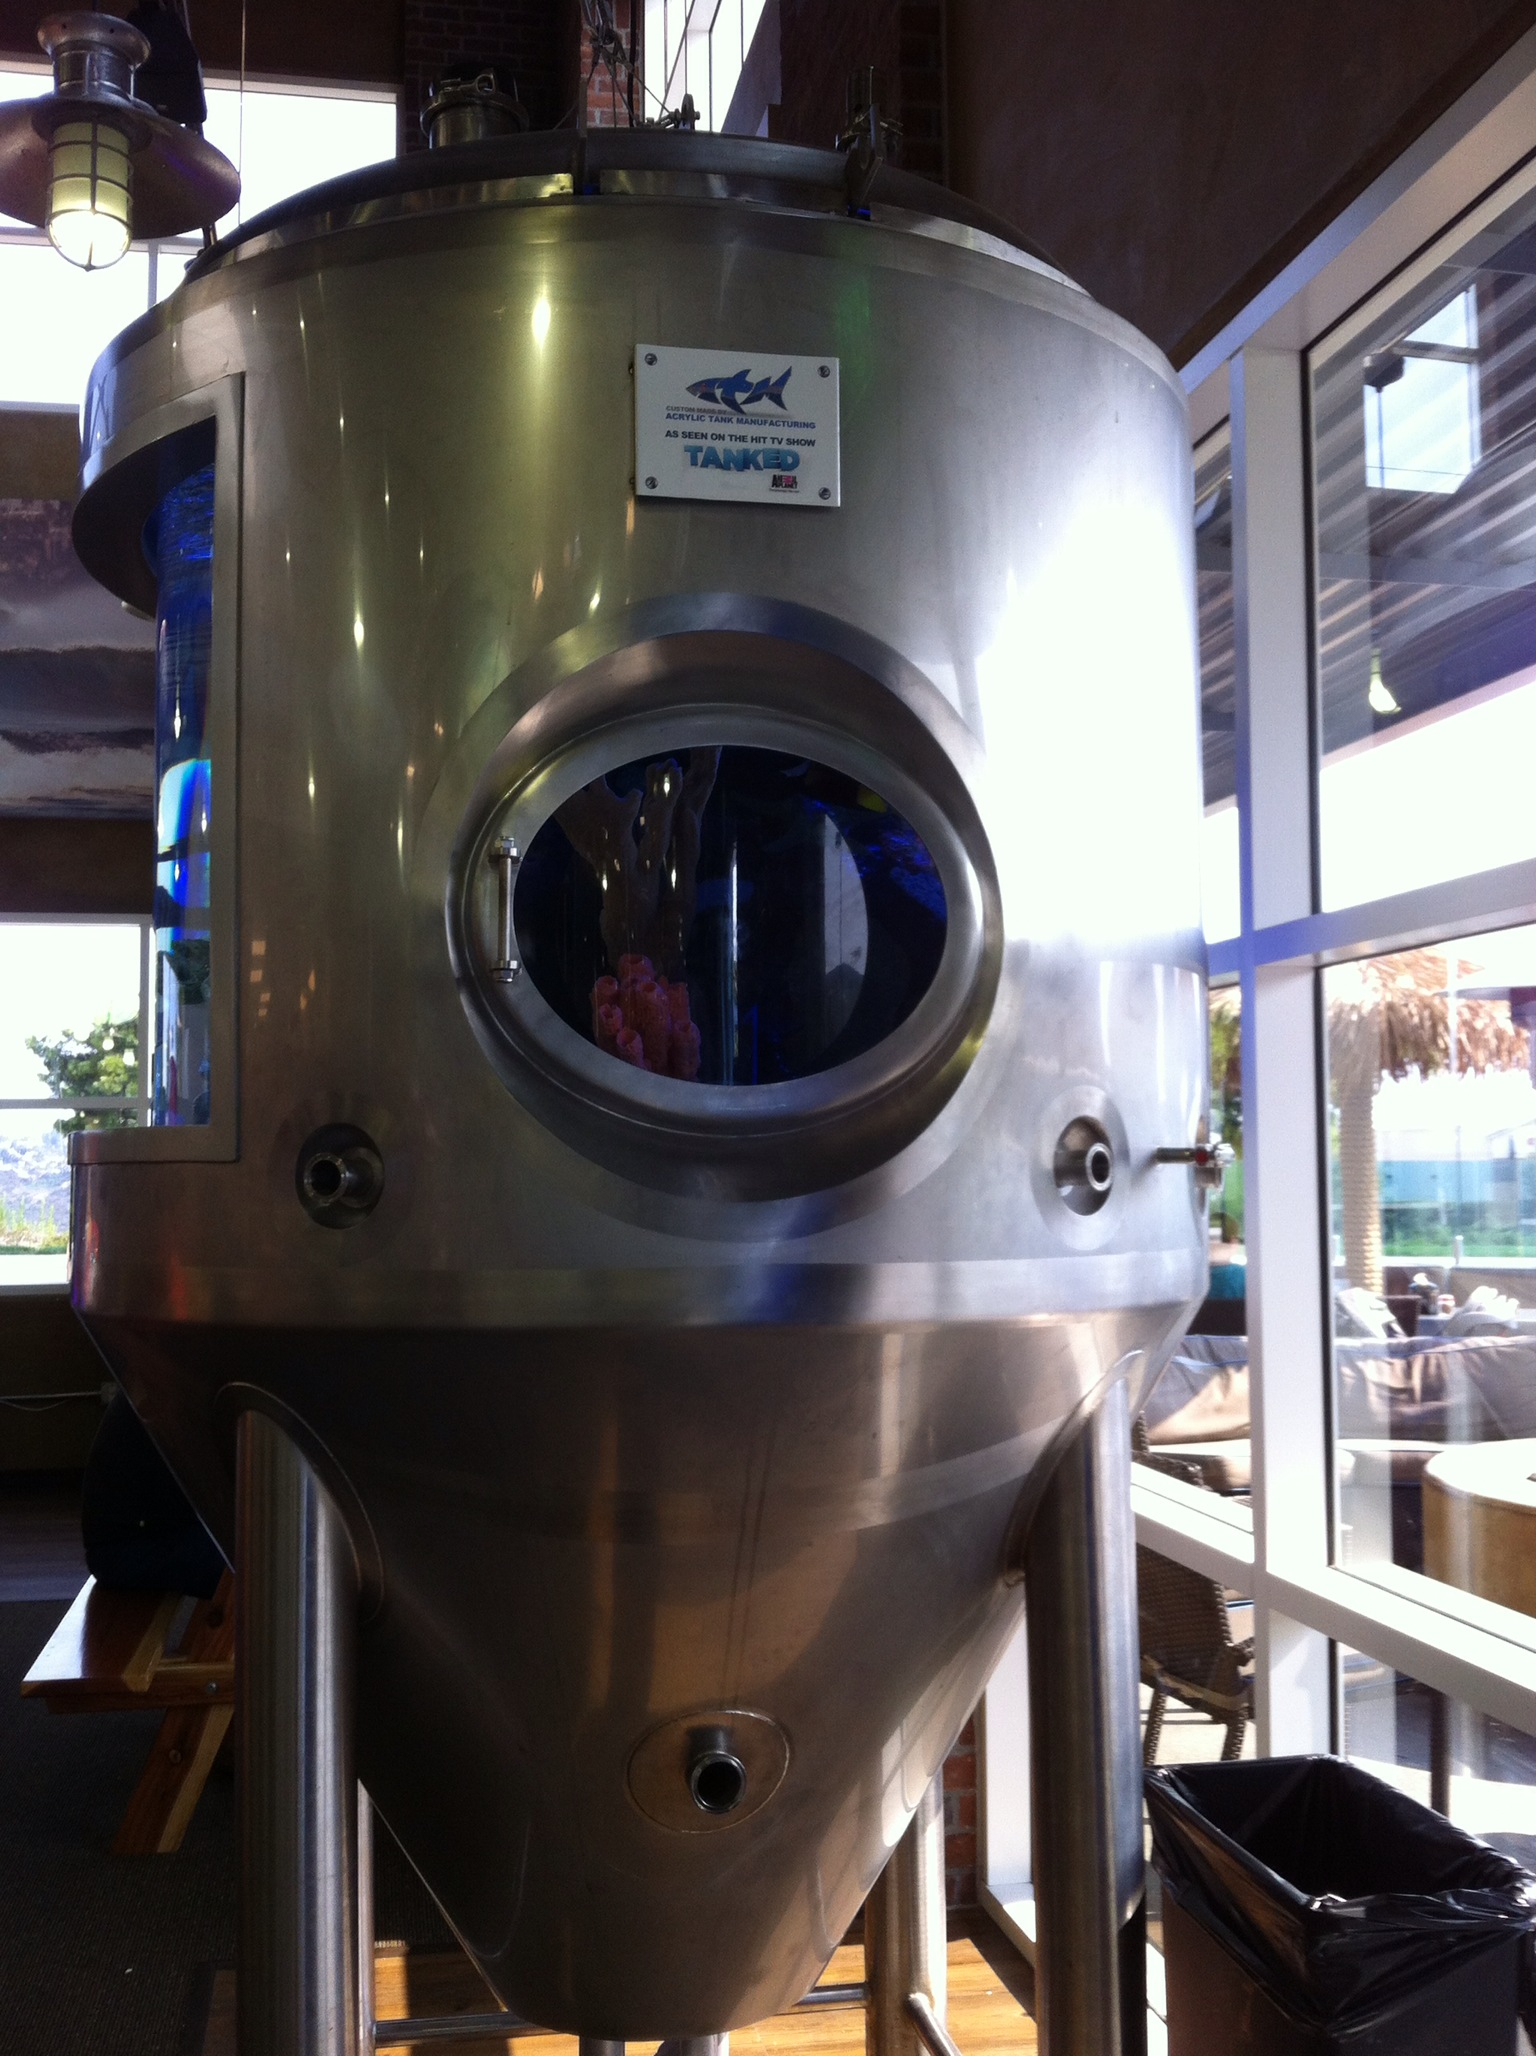 San Diego Air & Space Museum San Diego, Pizza port in San Marcos, California fish tank made by ATM/ Tanked ...